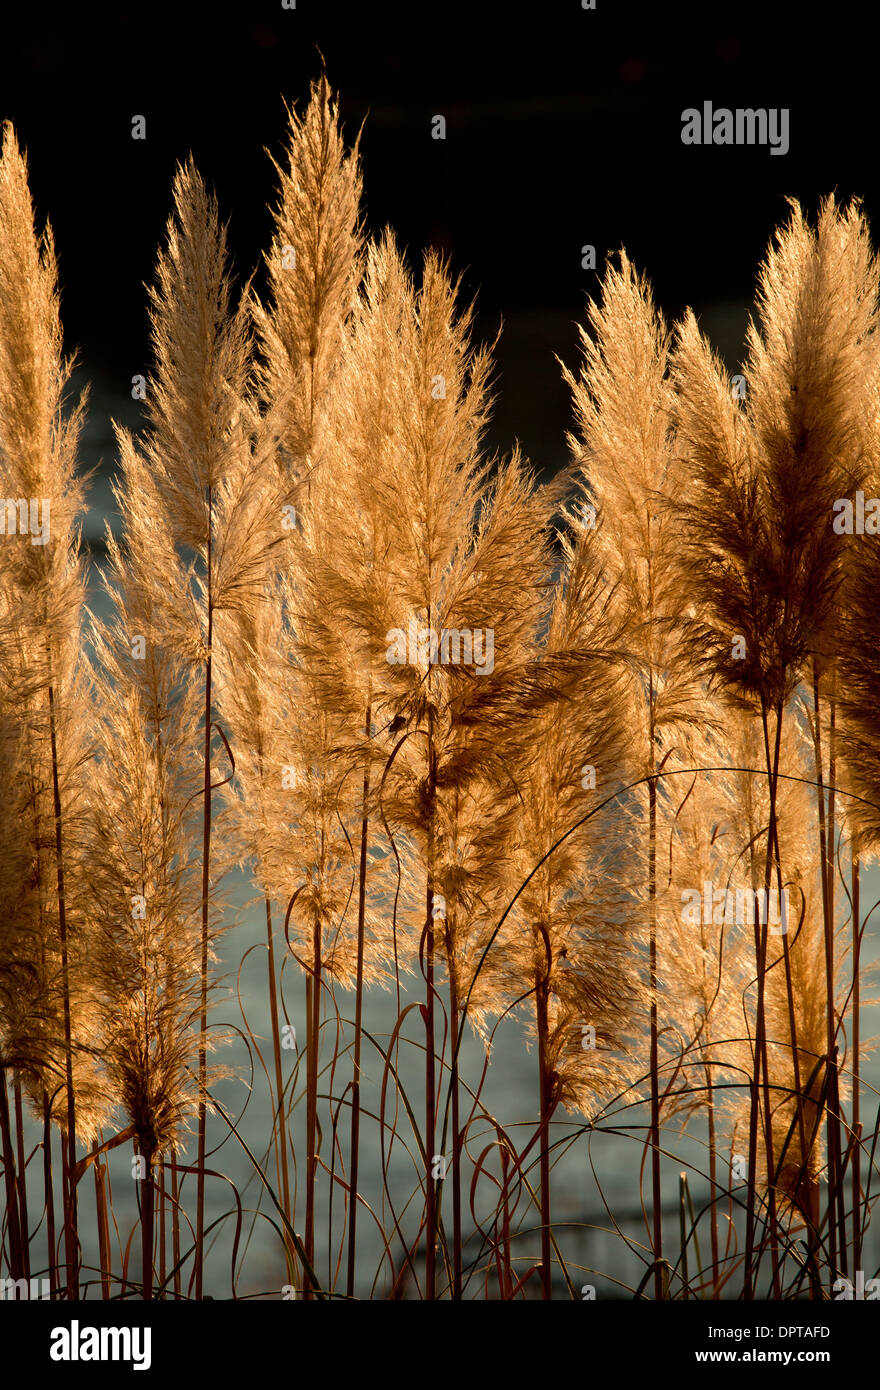 Seed heads or plumes of Pampas Grass, Cortaderia selloana, in autumn, against the light. France. - Stock Image